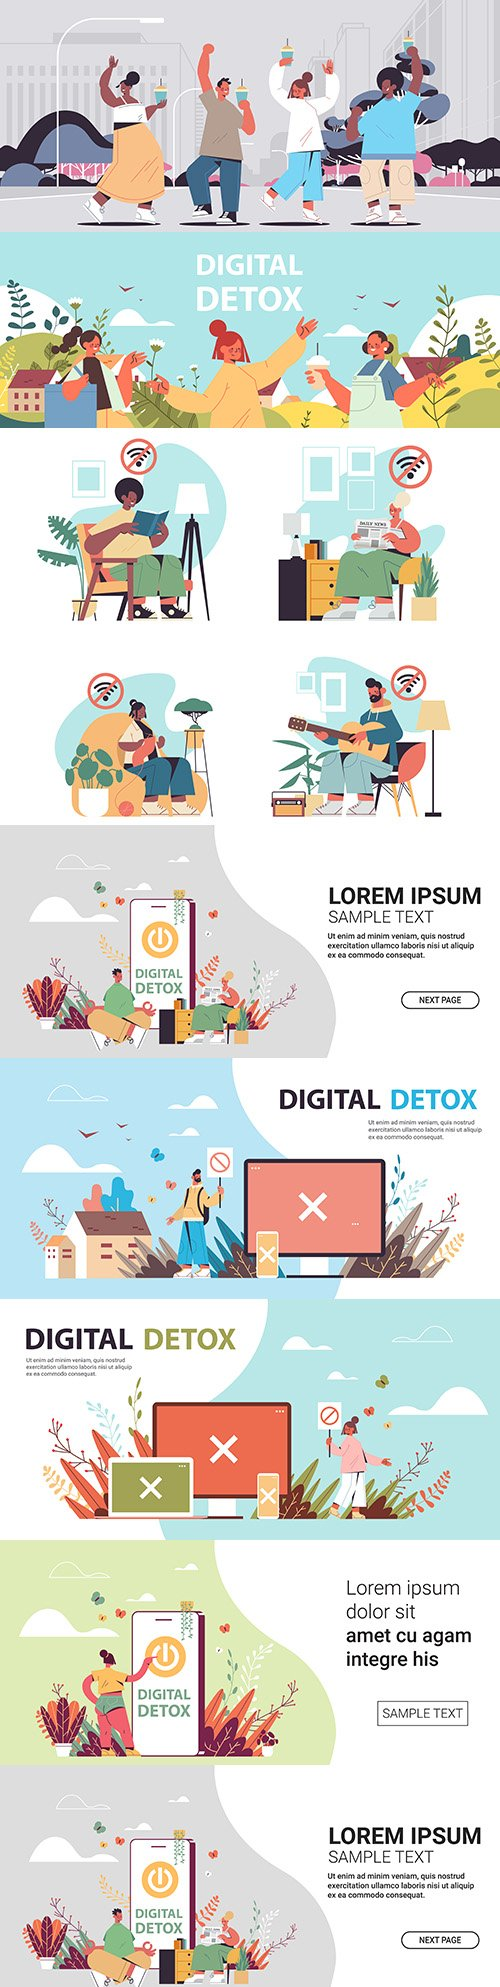 People walk and spend time without gadgets digital detox